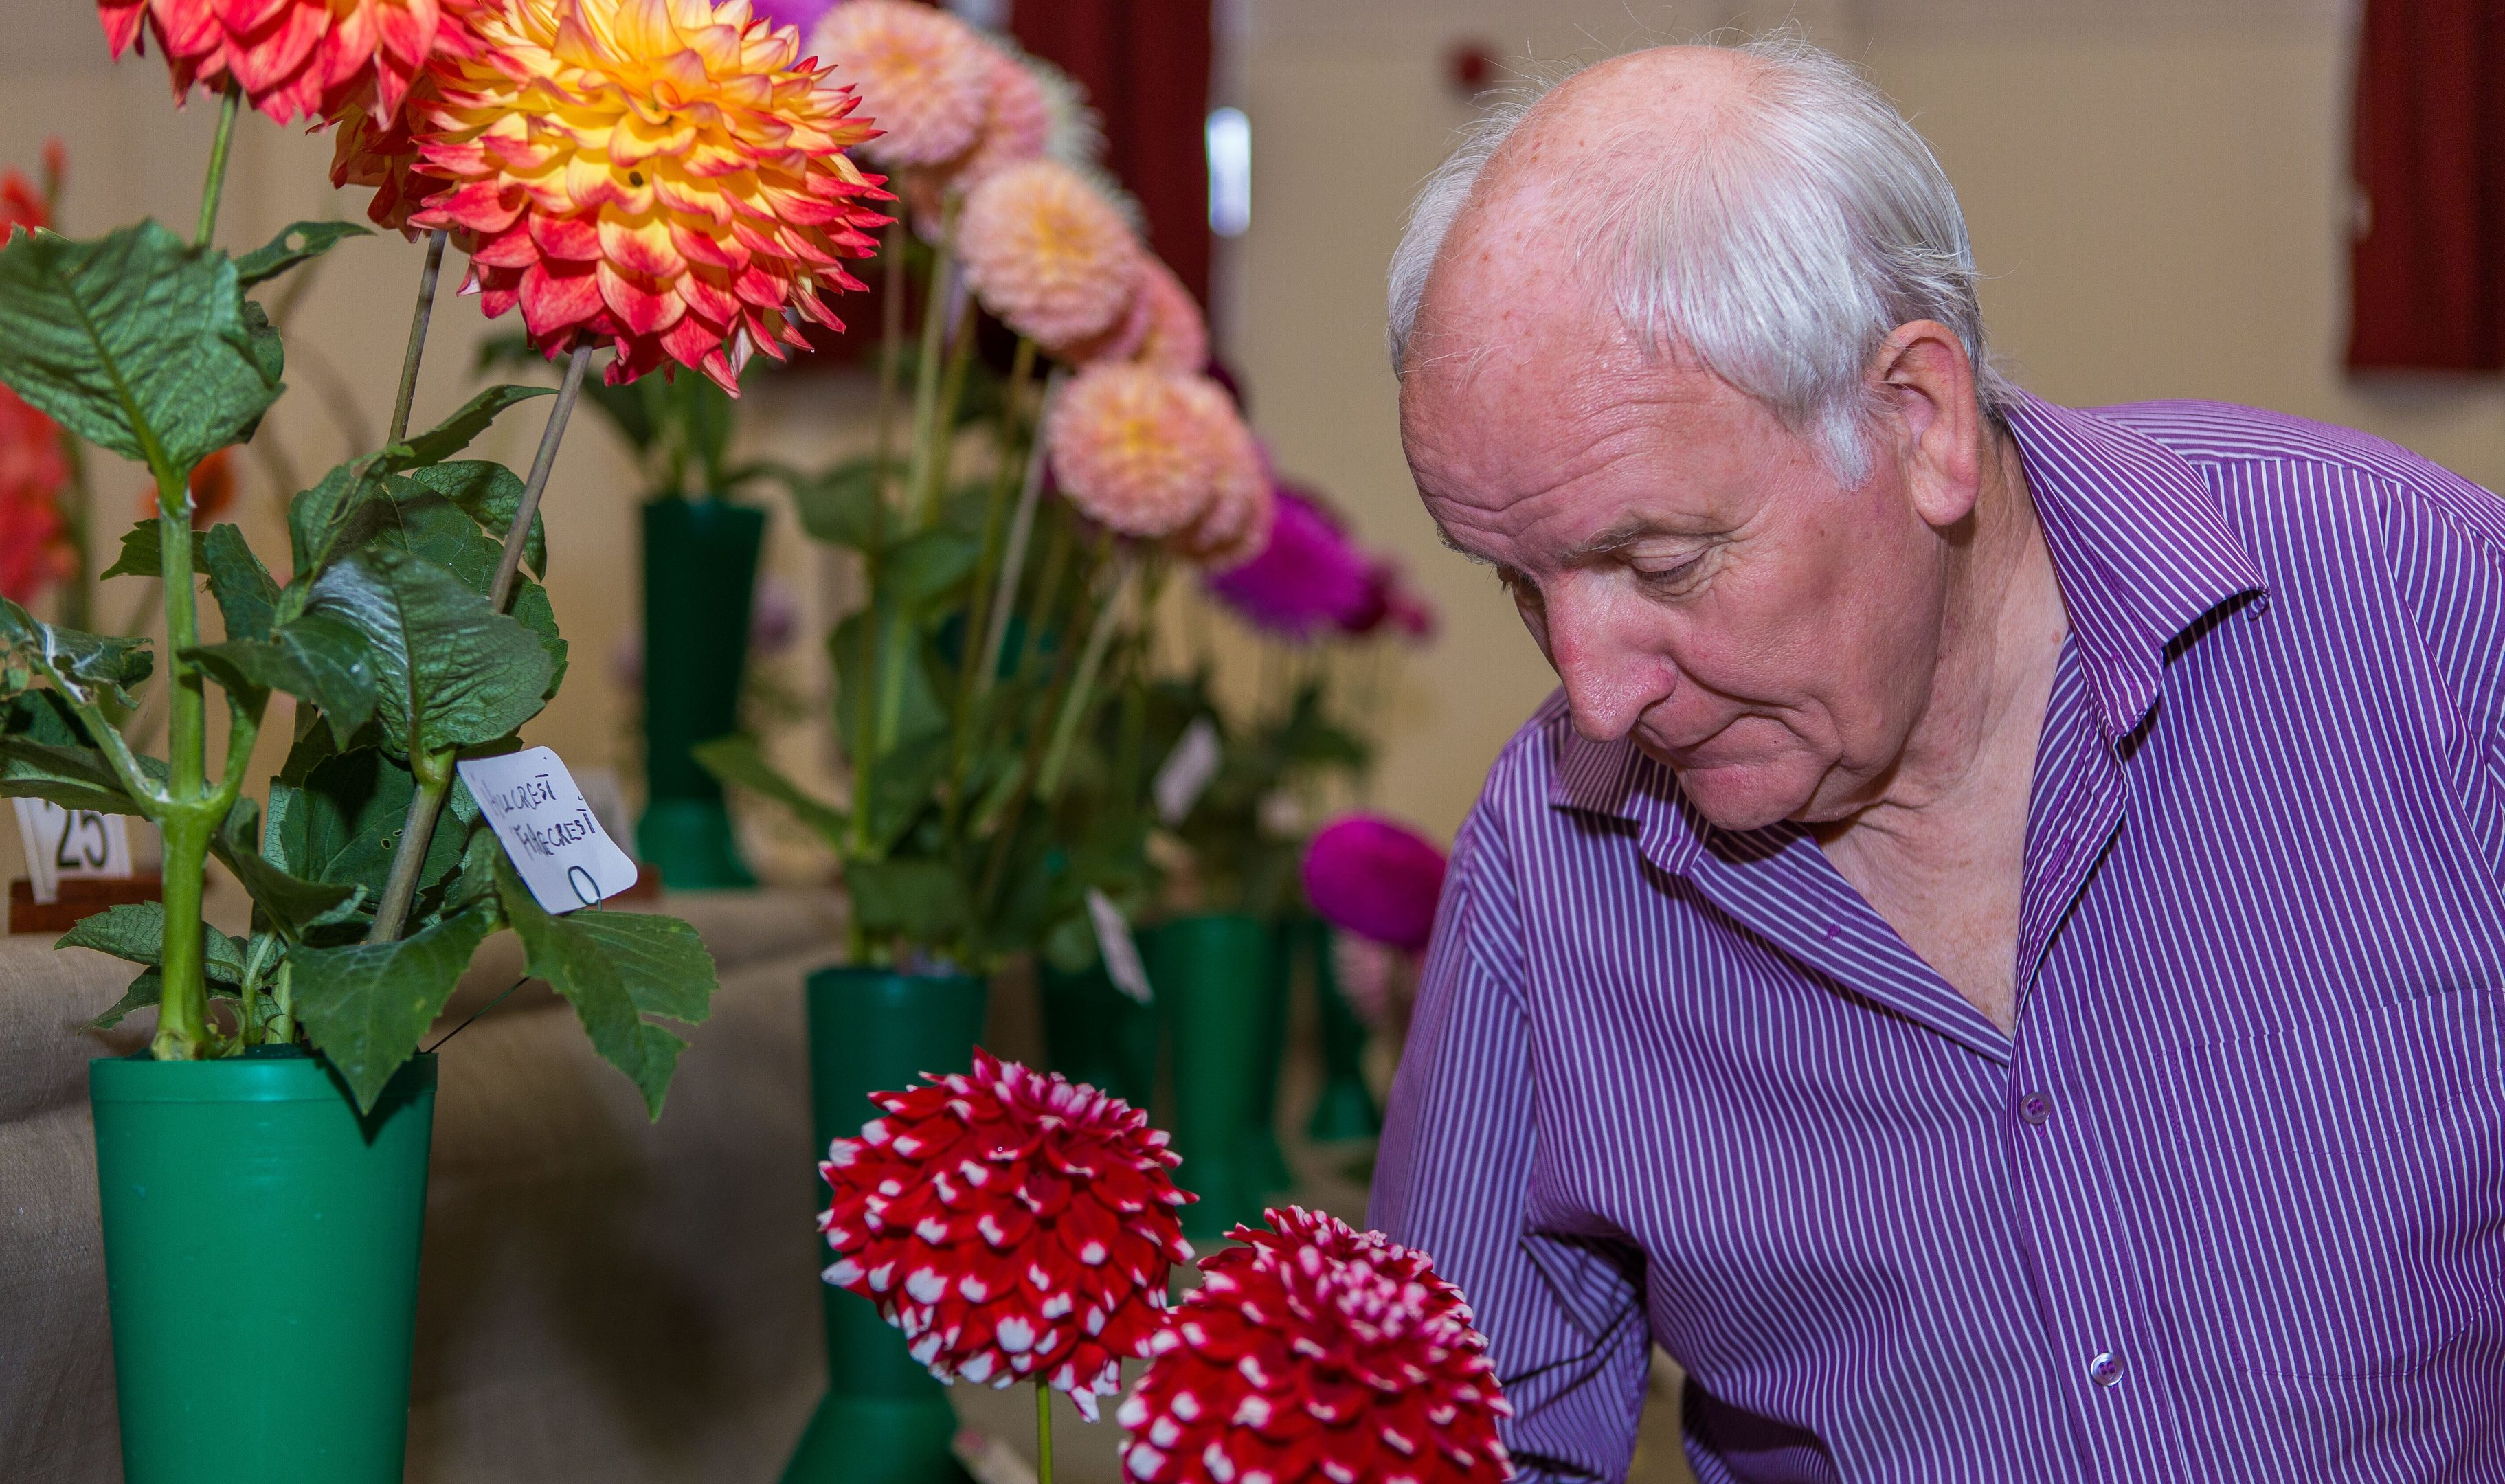 Andrew Kidd from Cupar examines the flowers closely